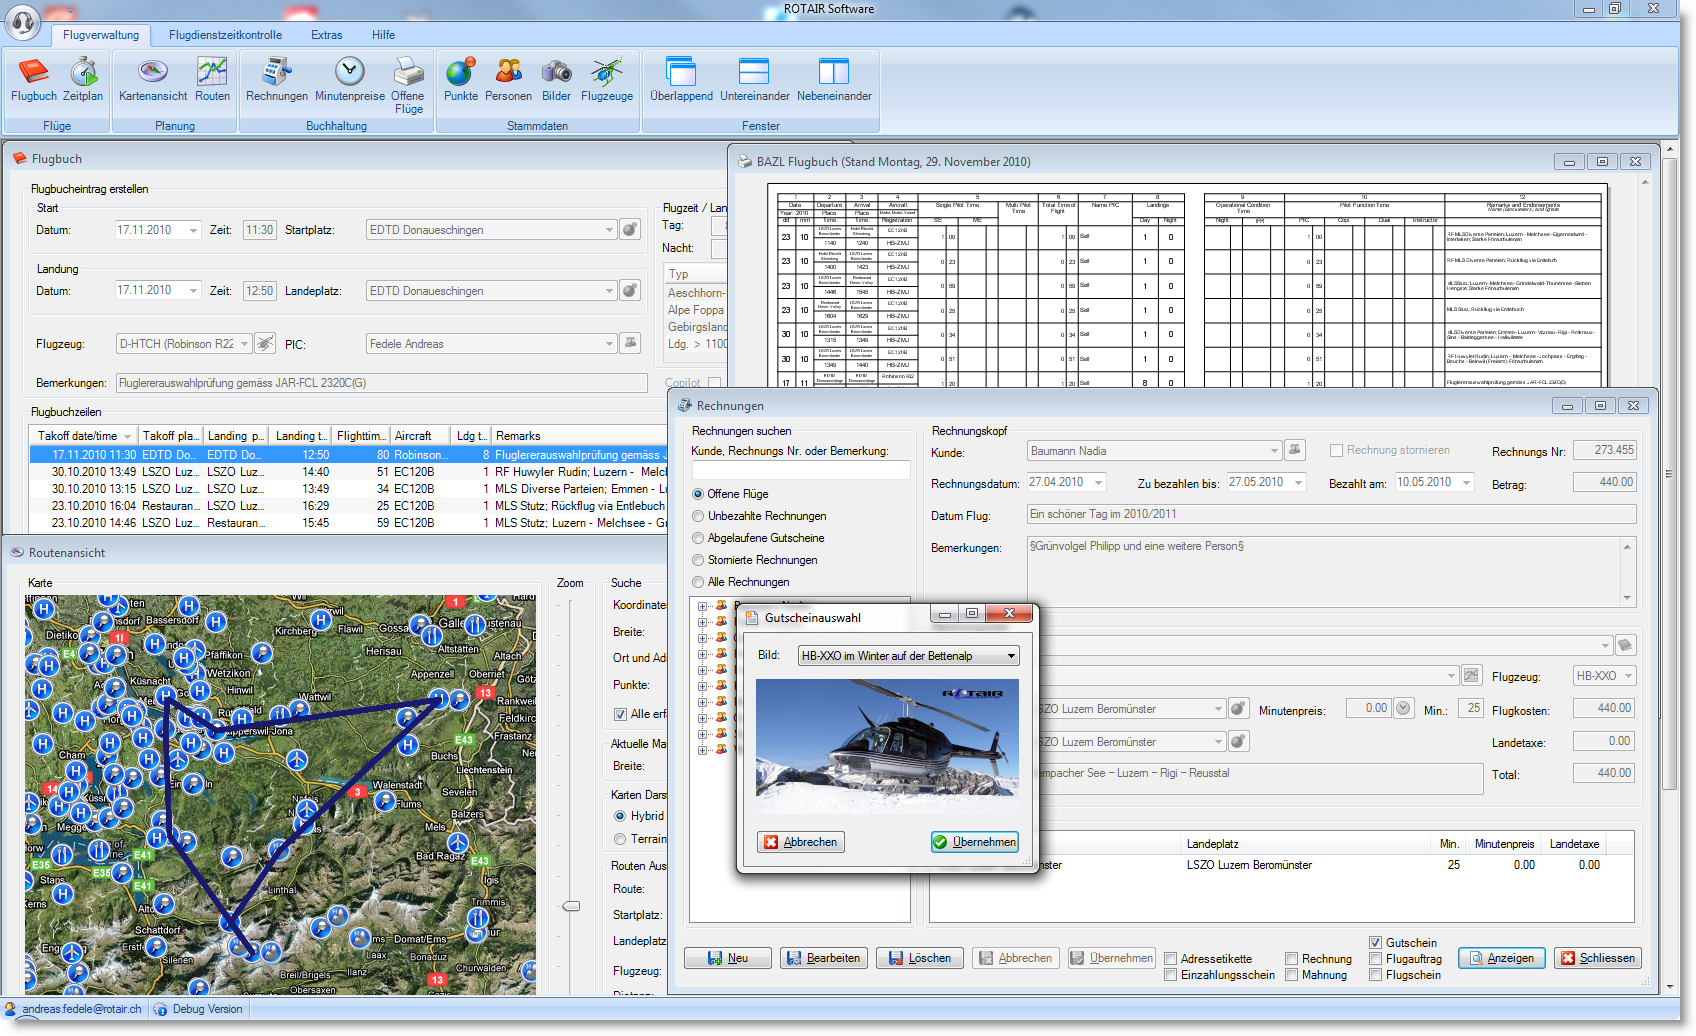 de frm_ms_rotair_software